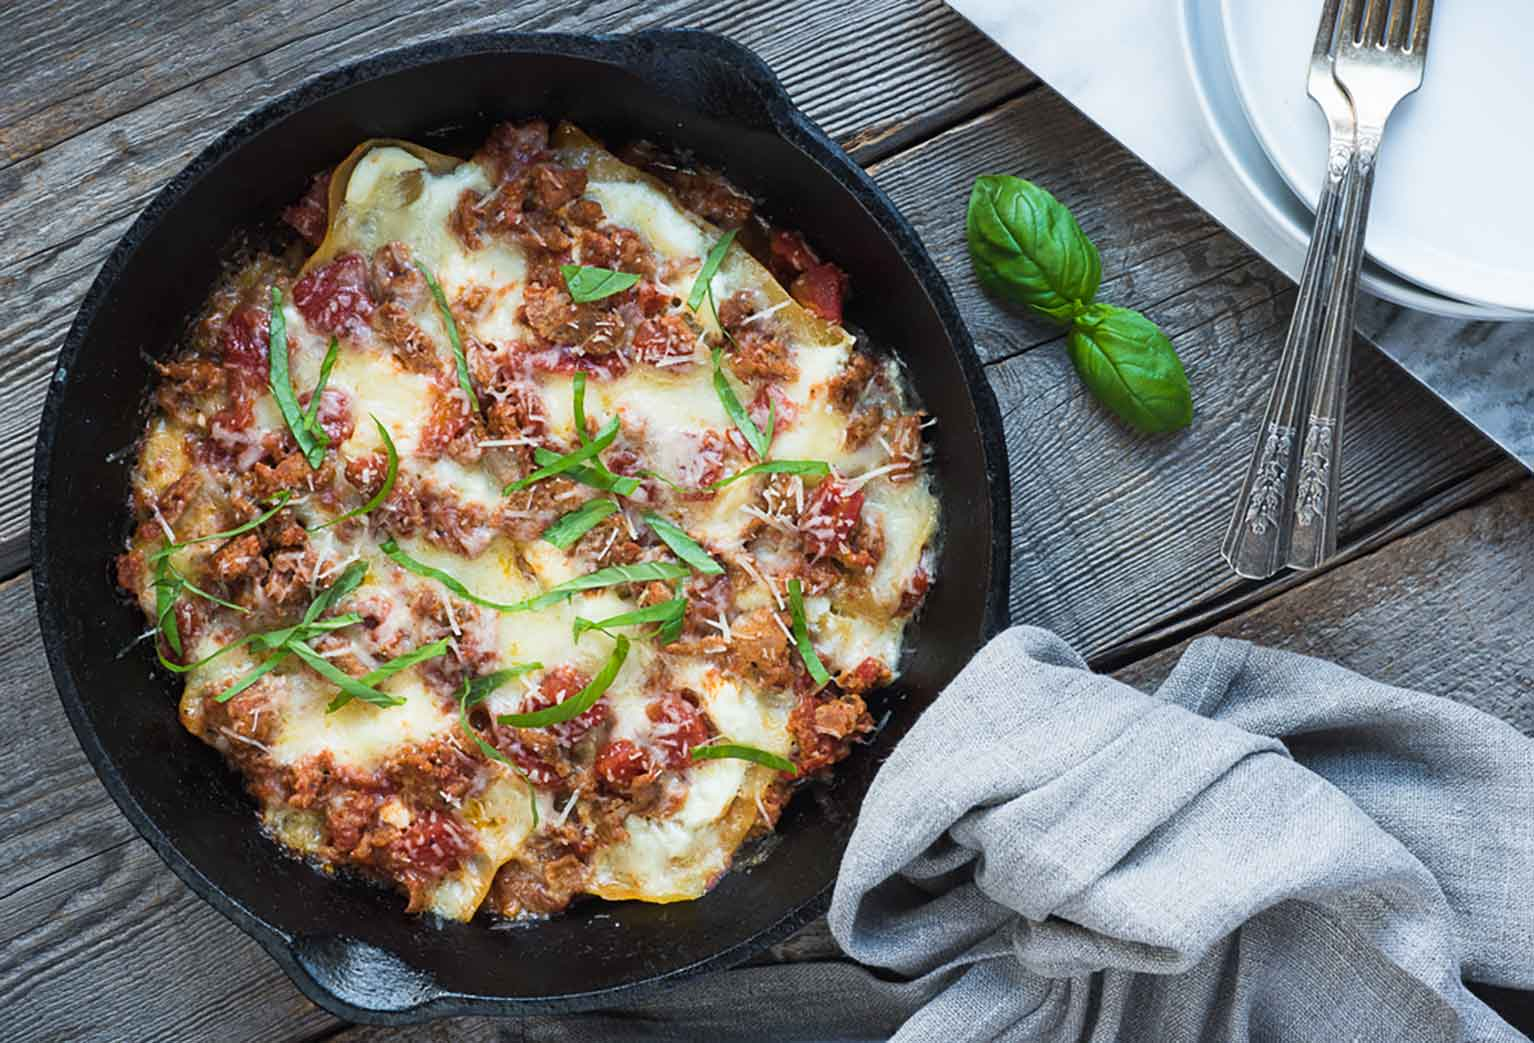 Skillet lasagna topped with basil and cheese in a cast iron pan